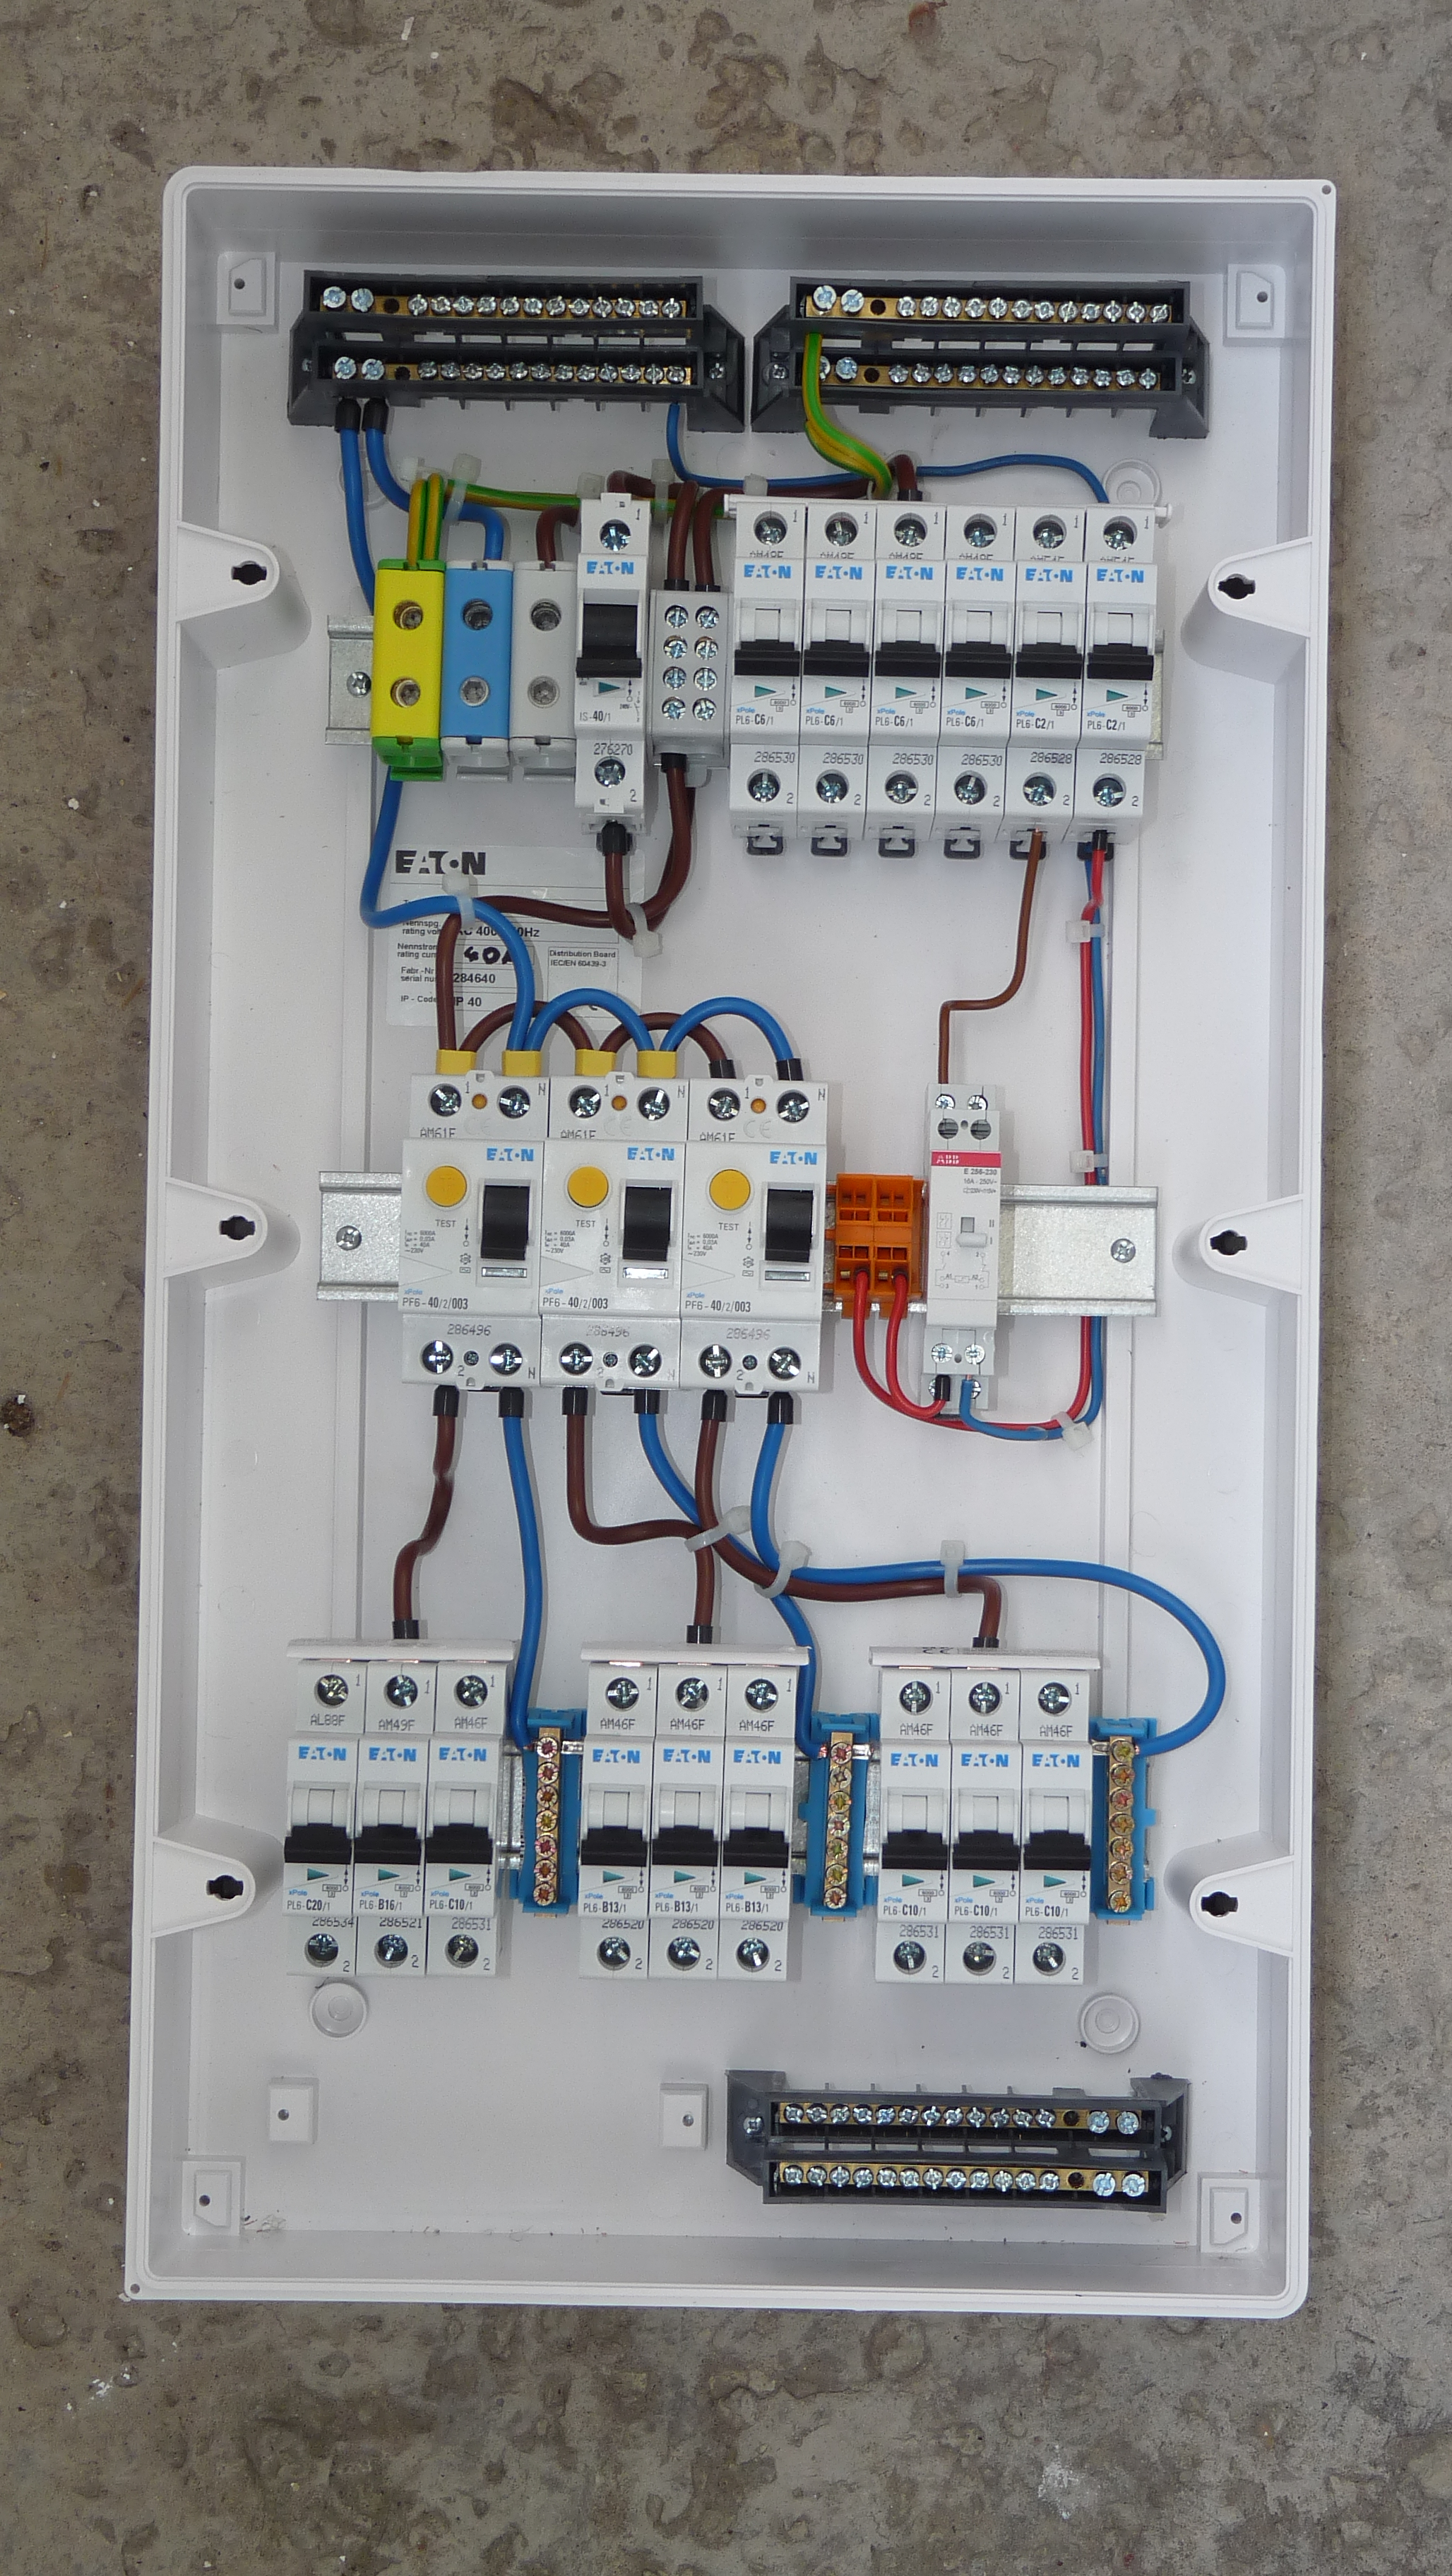 Paekaare Fuse Box on Heating System Wiring Diagrams